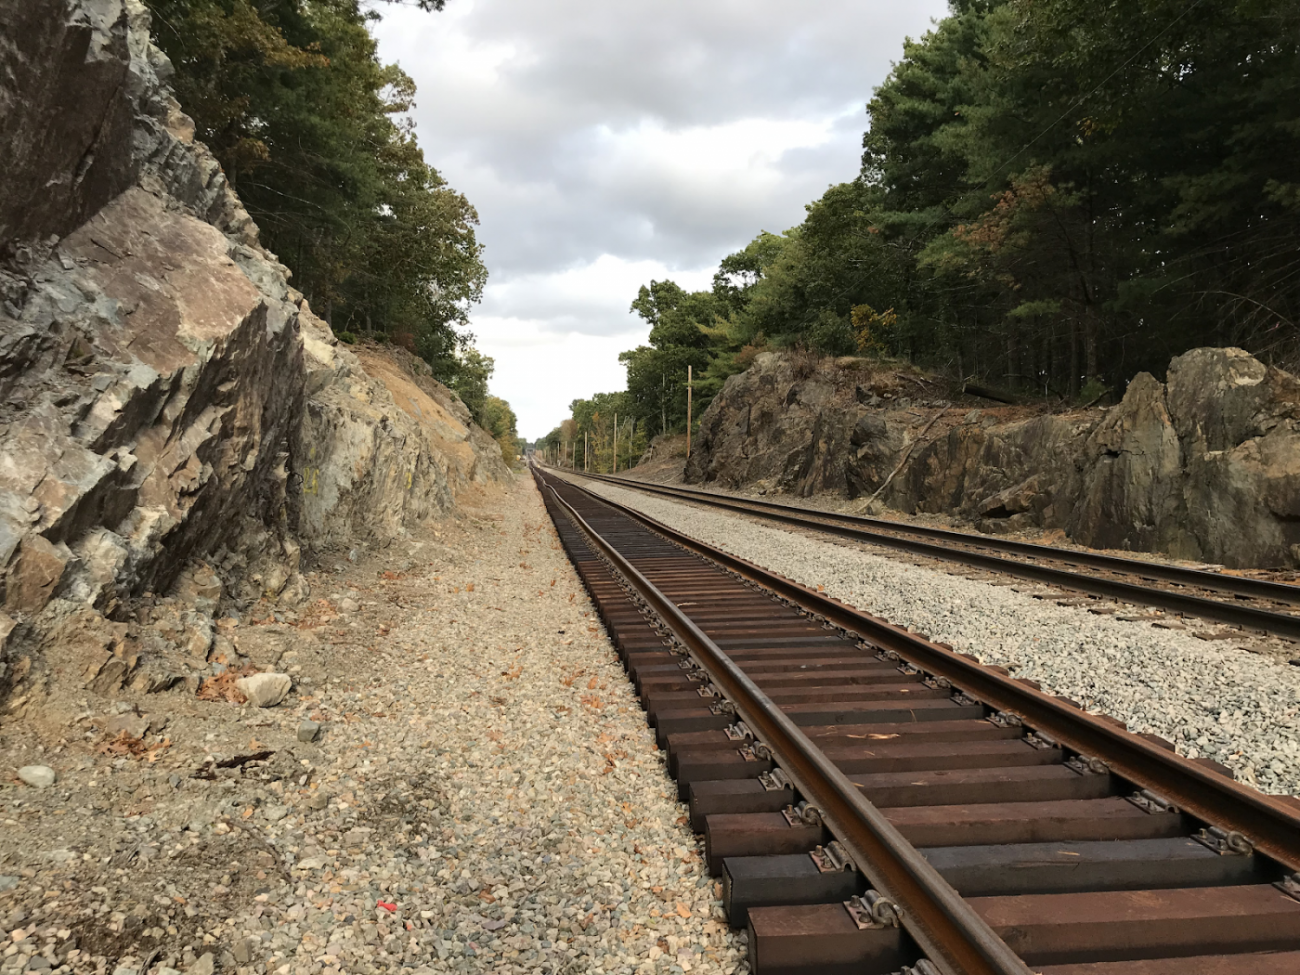 New tracks were installed parallel to the existing track after excavating the adjacent rocks and installing a drainage system (October 2019)